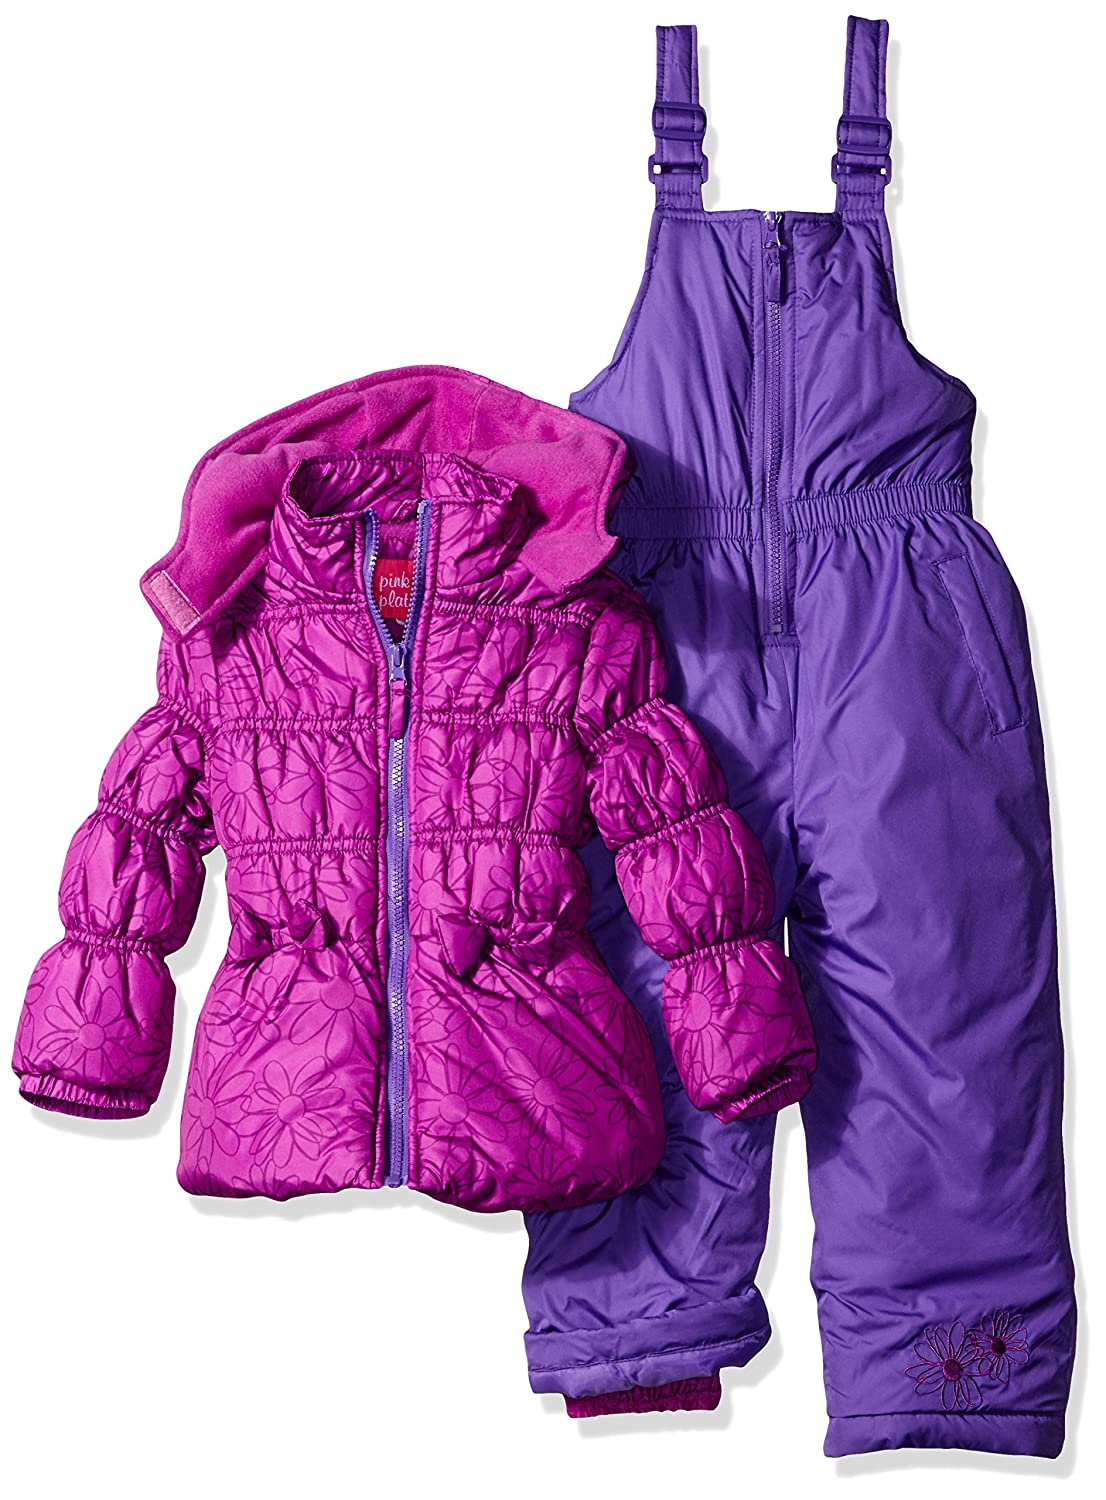 anorak pink girls platinum rain jacket fine pnk clothing heart print